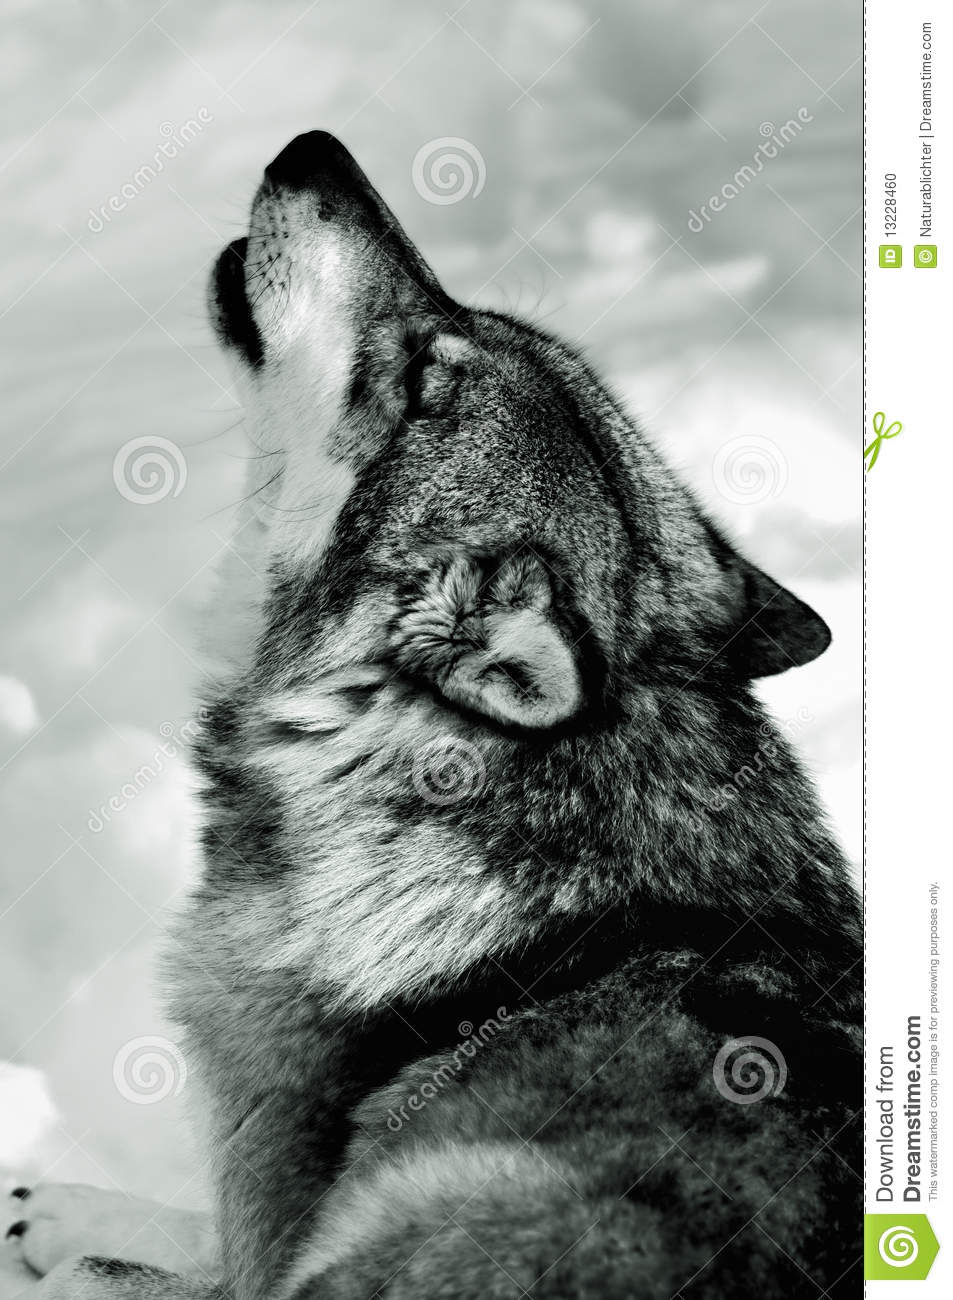 Howling wolf in snow stock photo image of looking looks 13228460